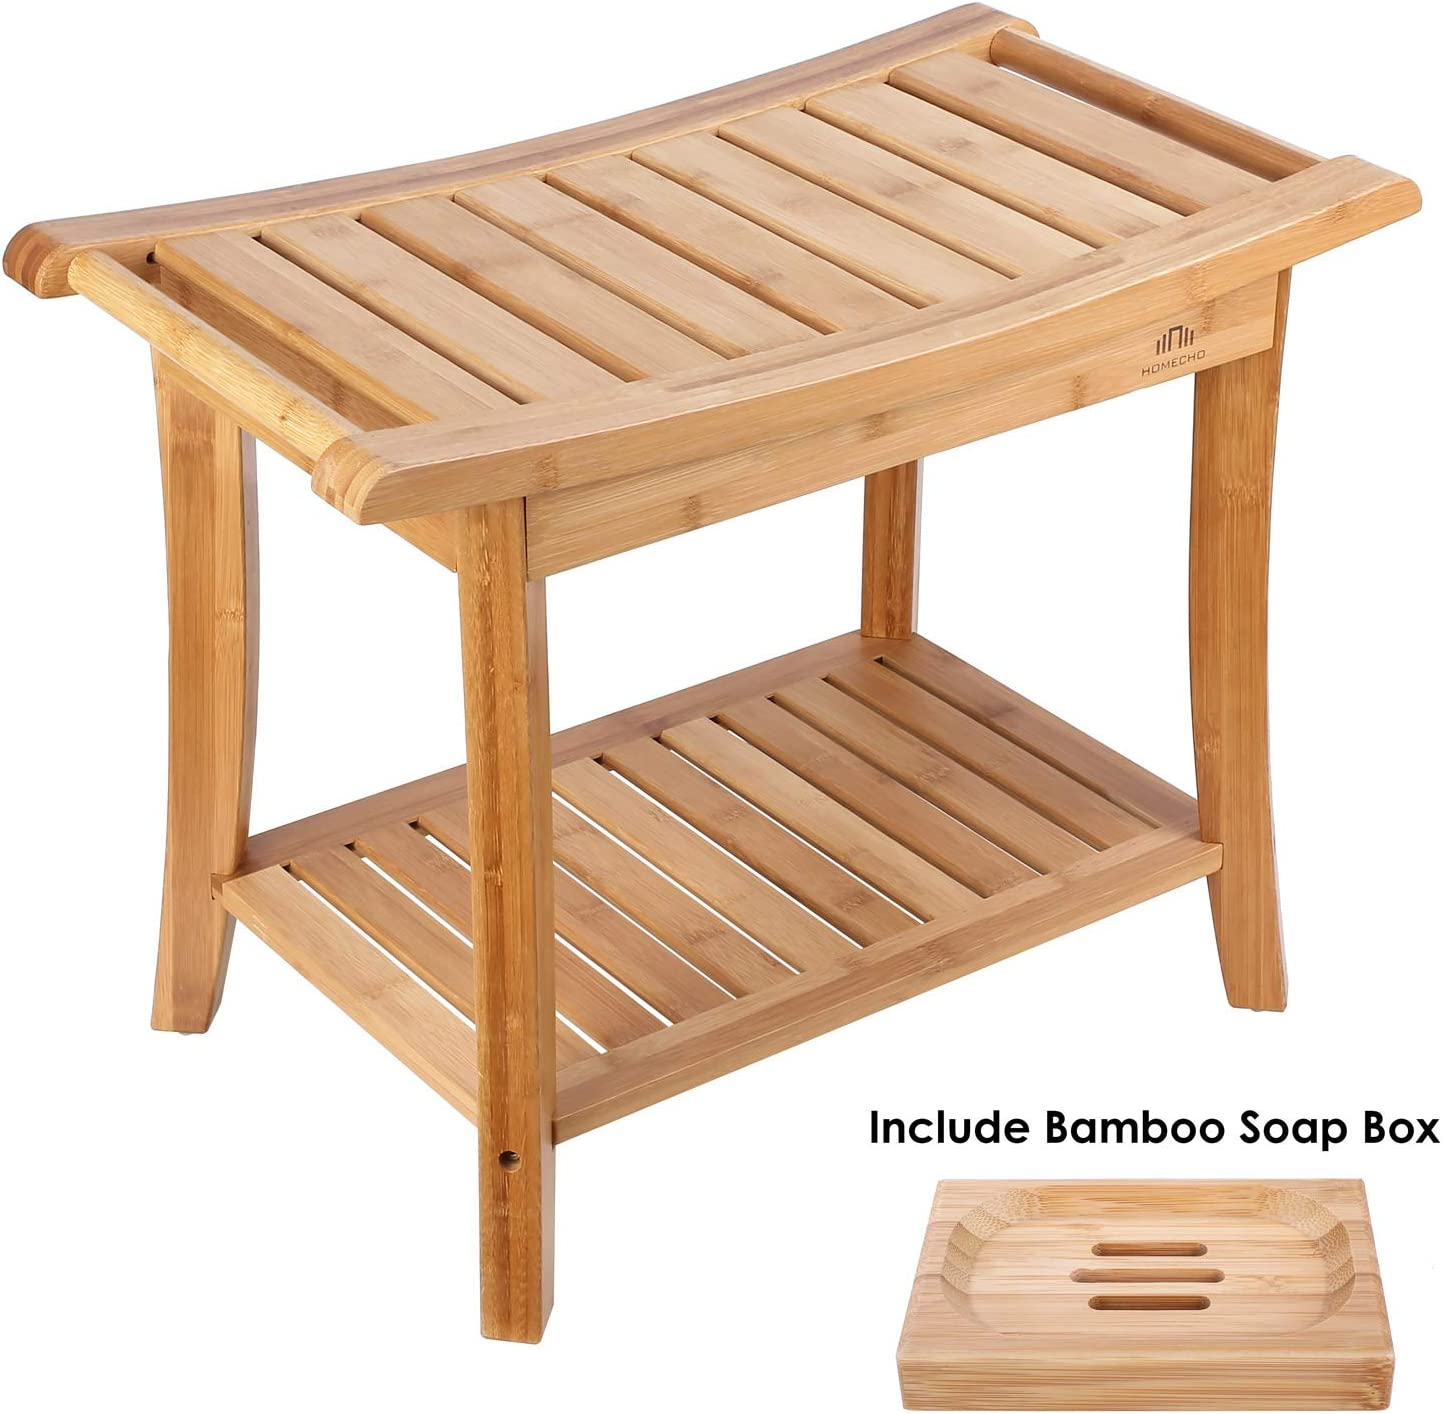 "HOMECHO Bamboo Shower Bench Stool Seat with Shelves Waterproof Wooden Bath Spa Bathroom Storage Organizer 23.6"" Large, Non Slip, Indoor Outdoor HMC-BA-001 716cnf1Hx7L"